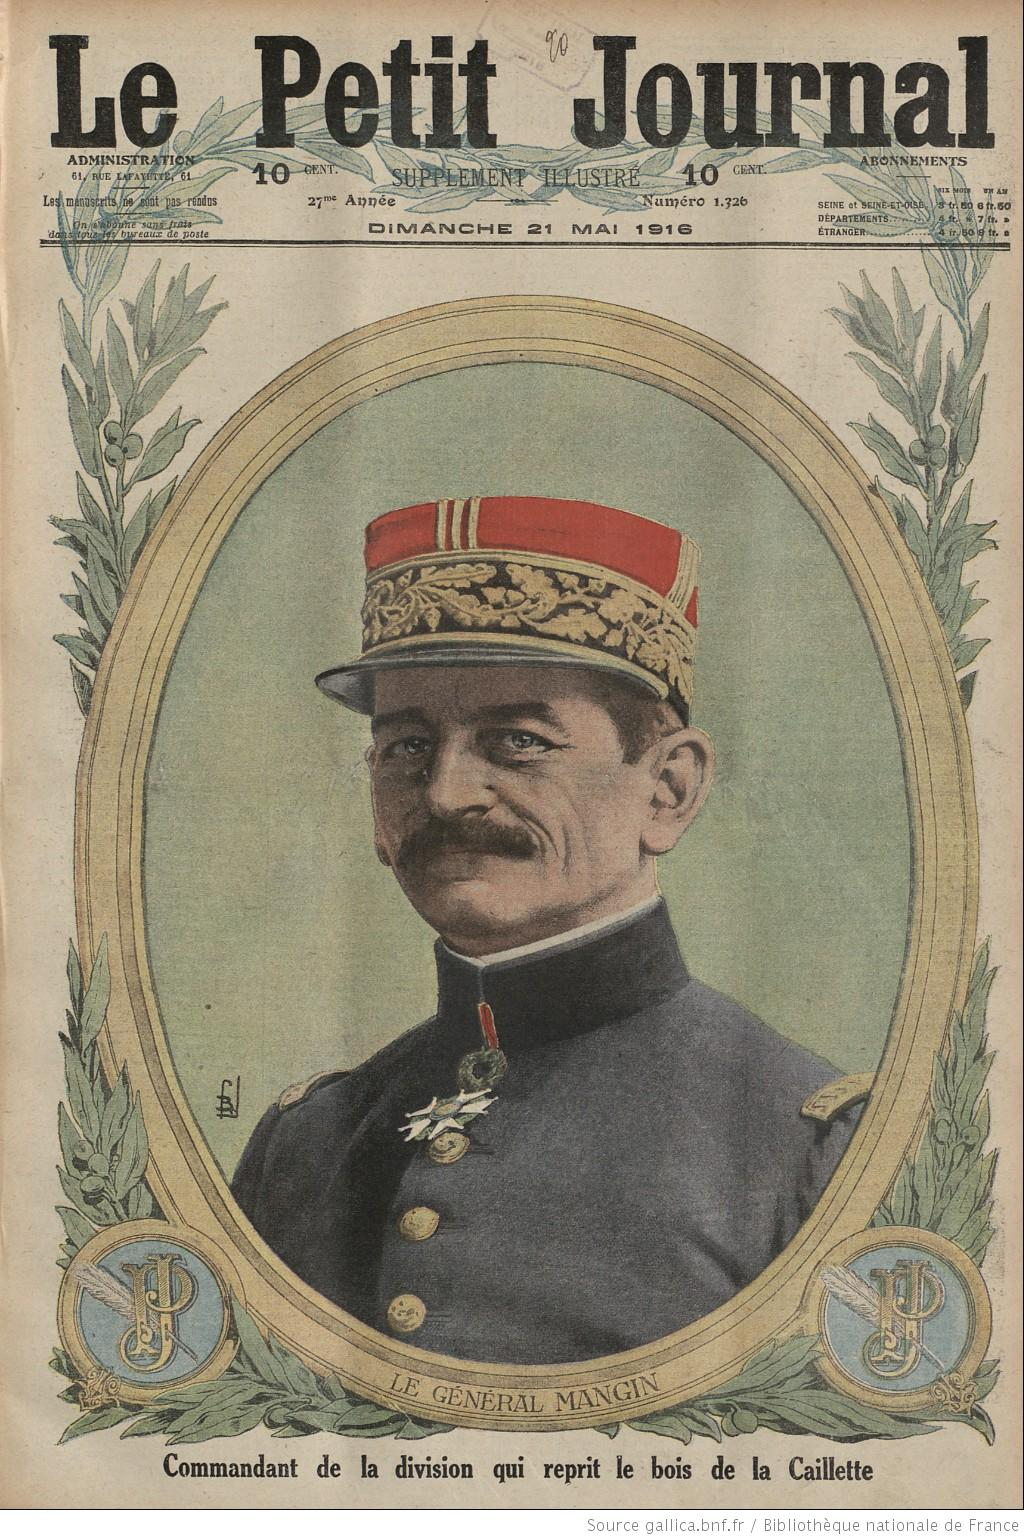 LPJ Illustre 1916-05-21 A.jpg